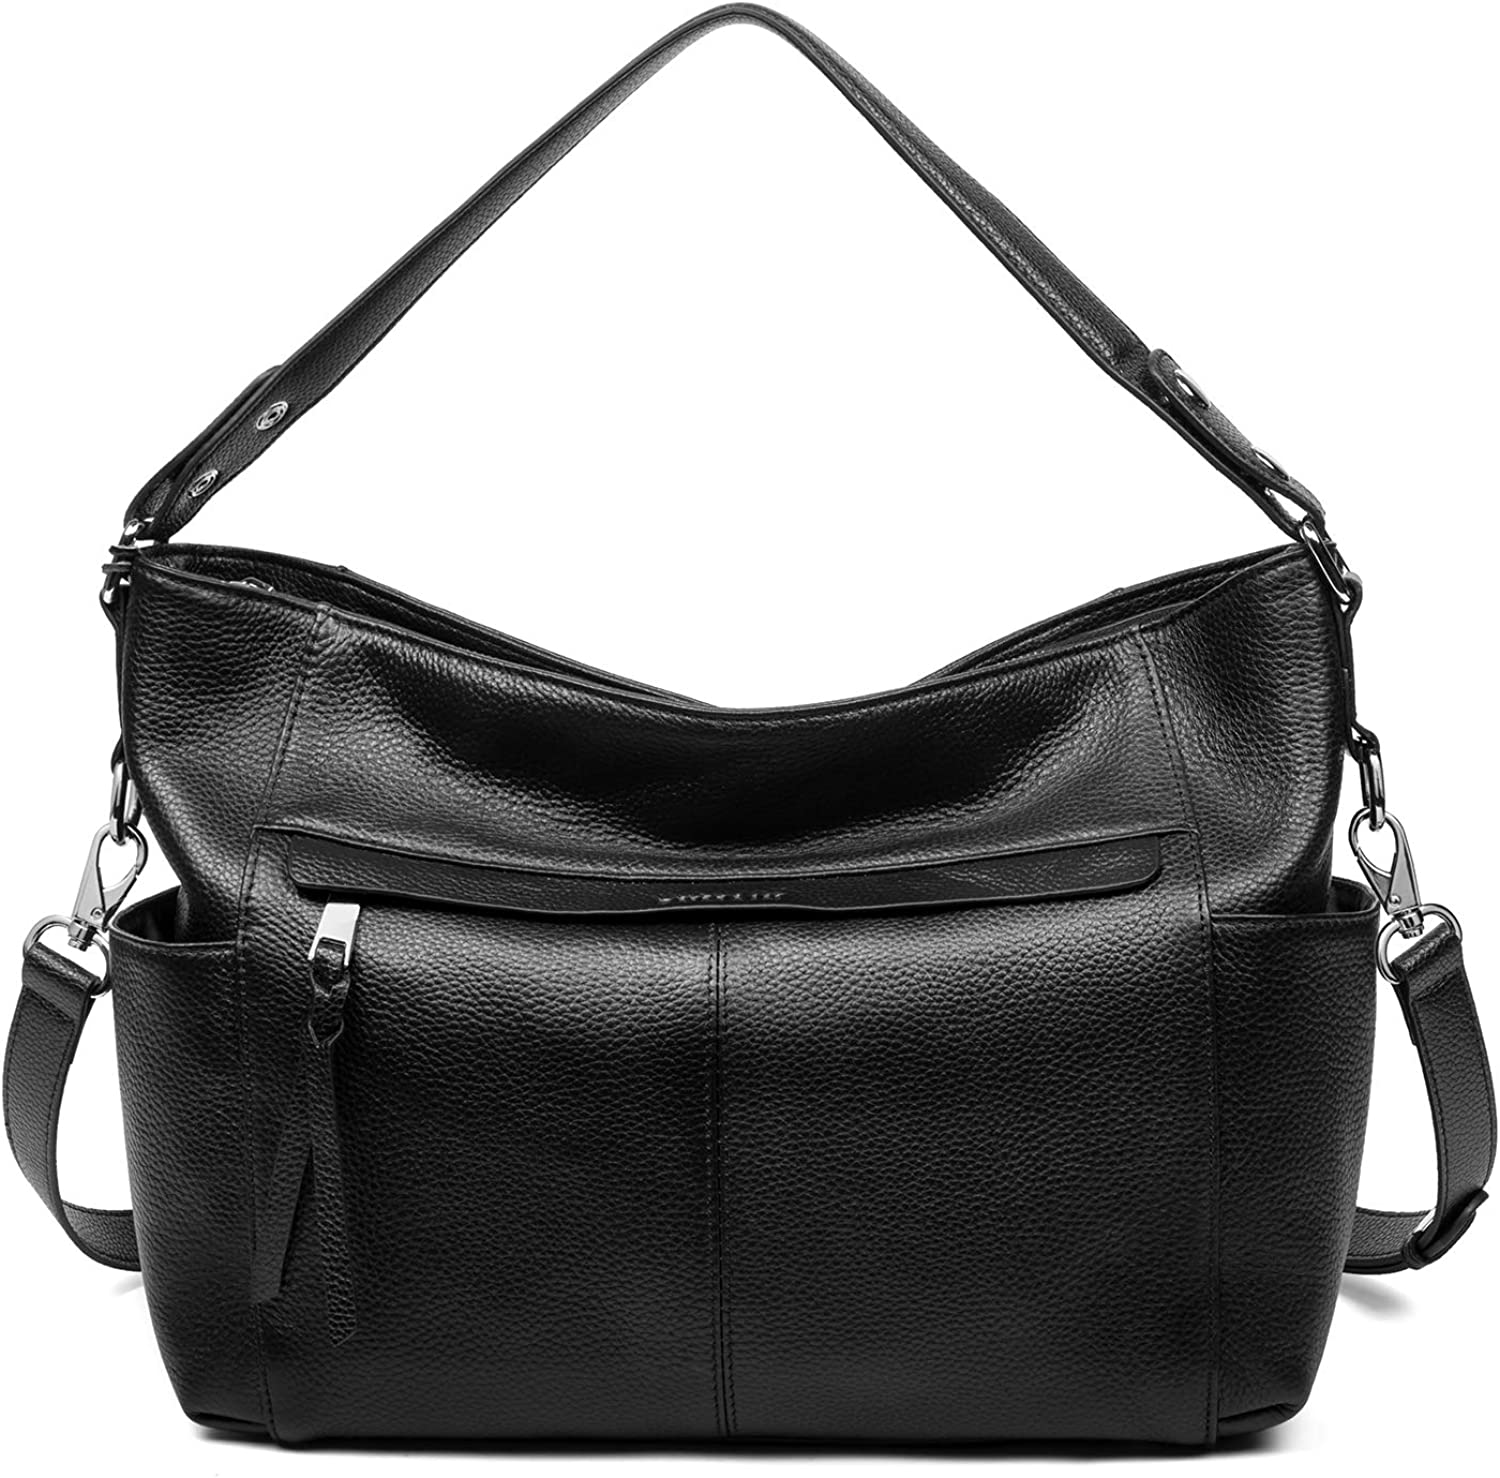 Soft Leather Hobo Handbags for Women, Work Daily Shoulder Tote Purses Crossbody Top Handle Large Bag